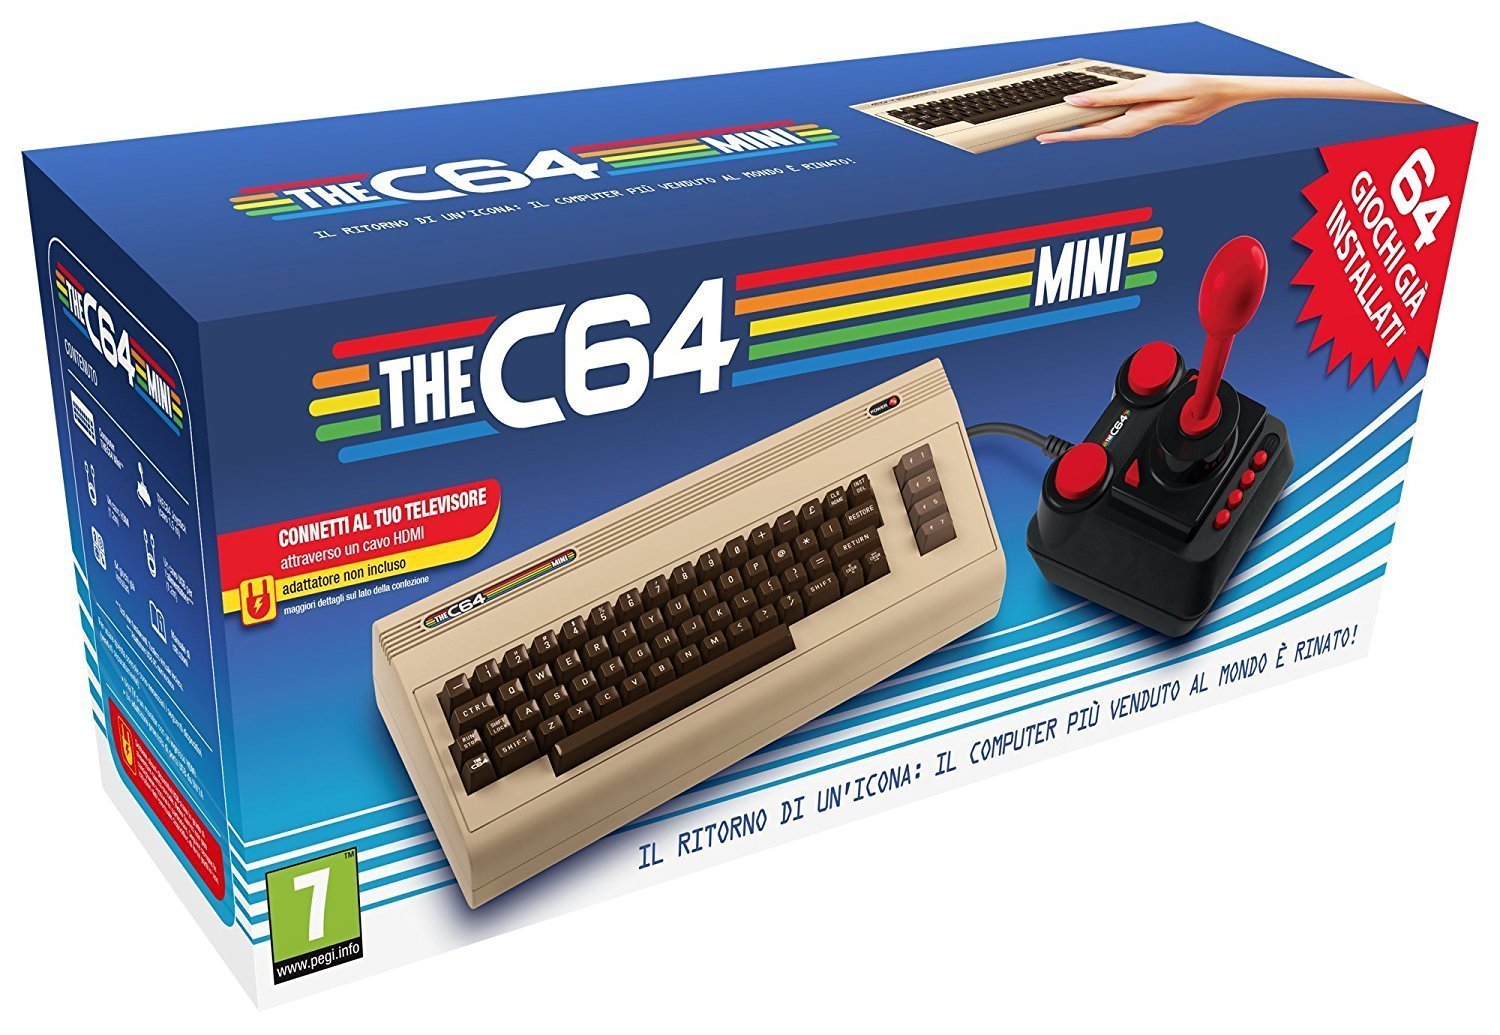 regali-per-uomo THEC64 Mini